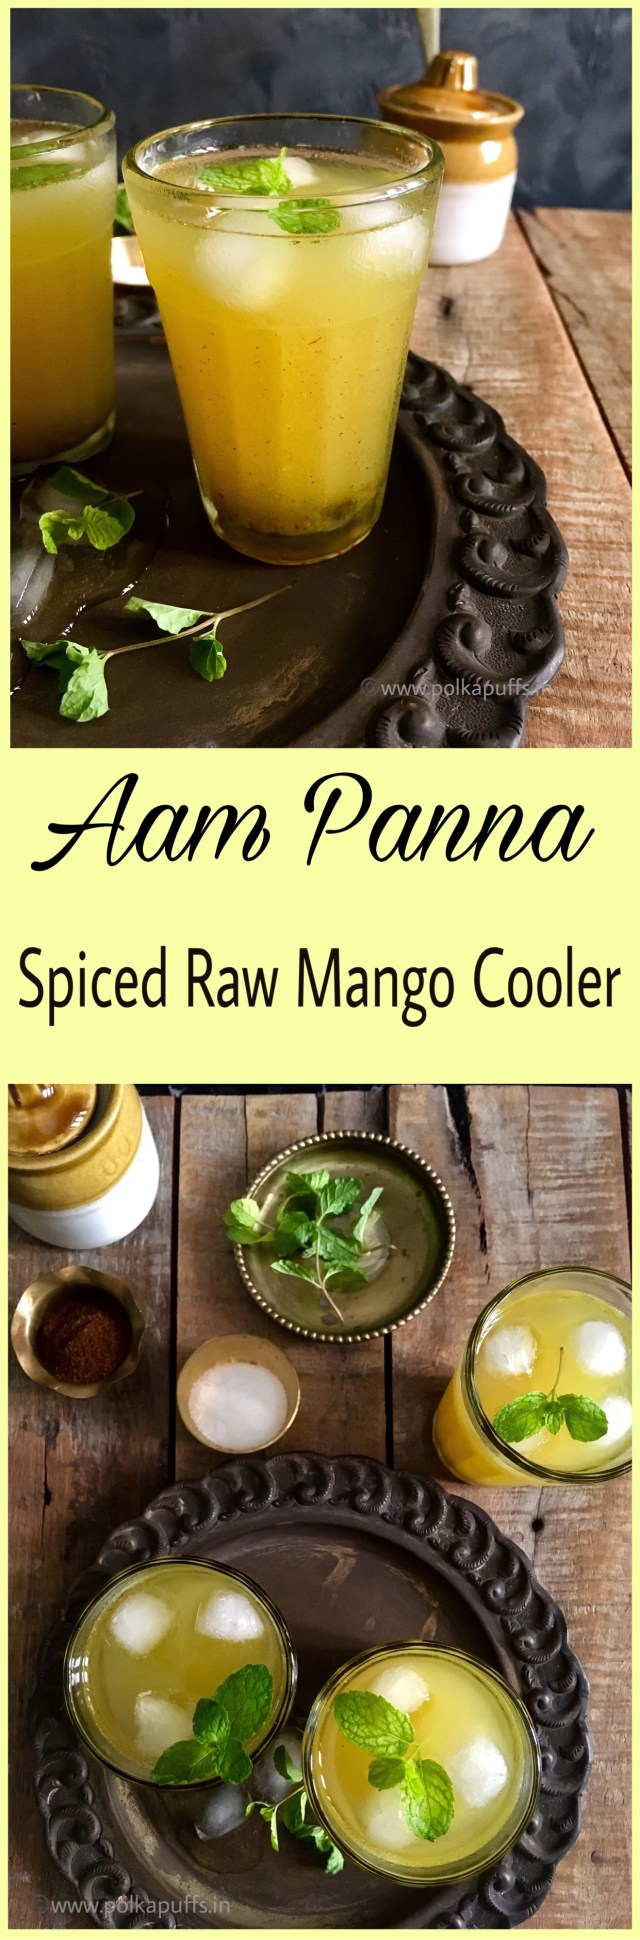 Aam Panna | Indian Mango Cooler